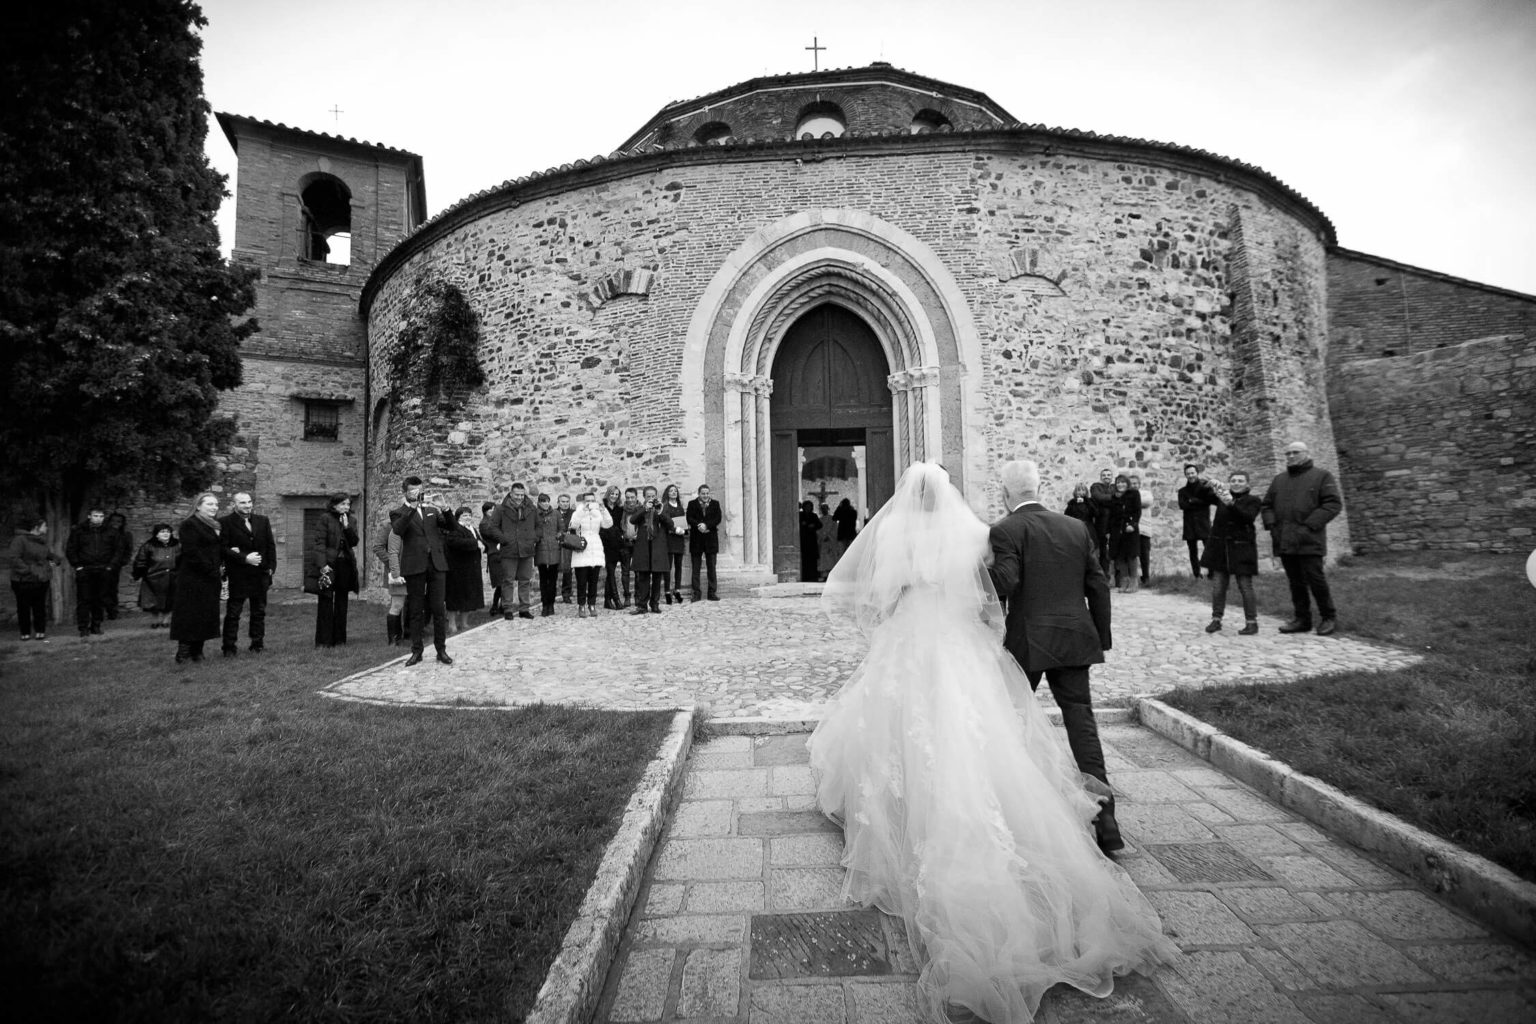 Winter wedding in Perugia reportage by Nino Lombardo photographer